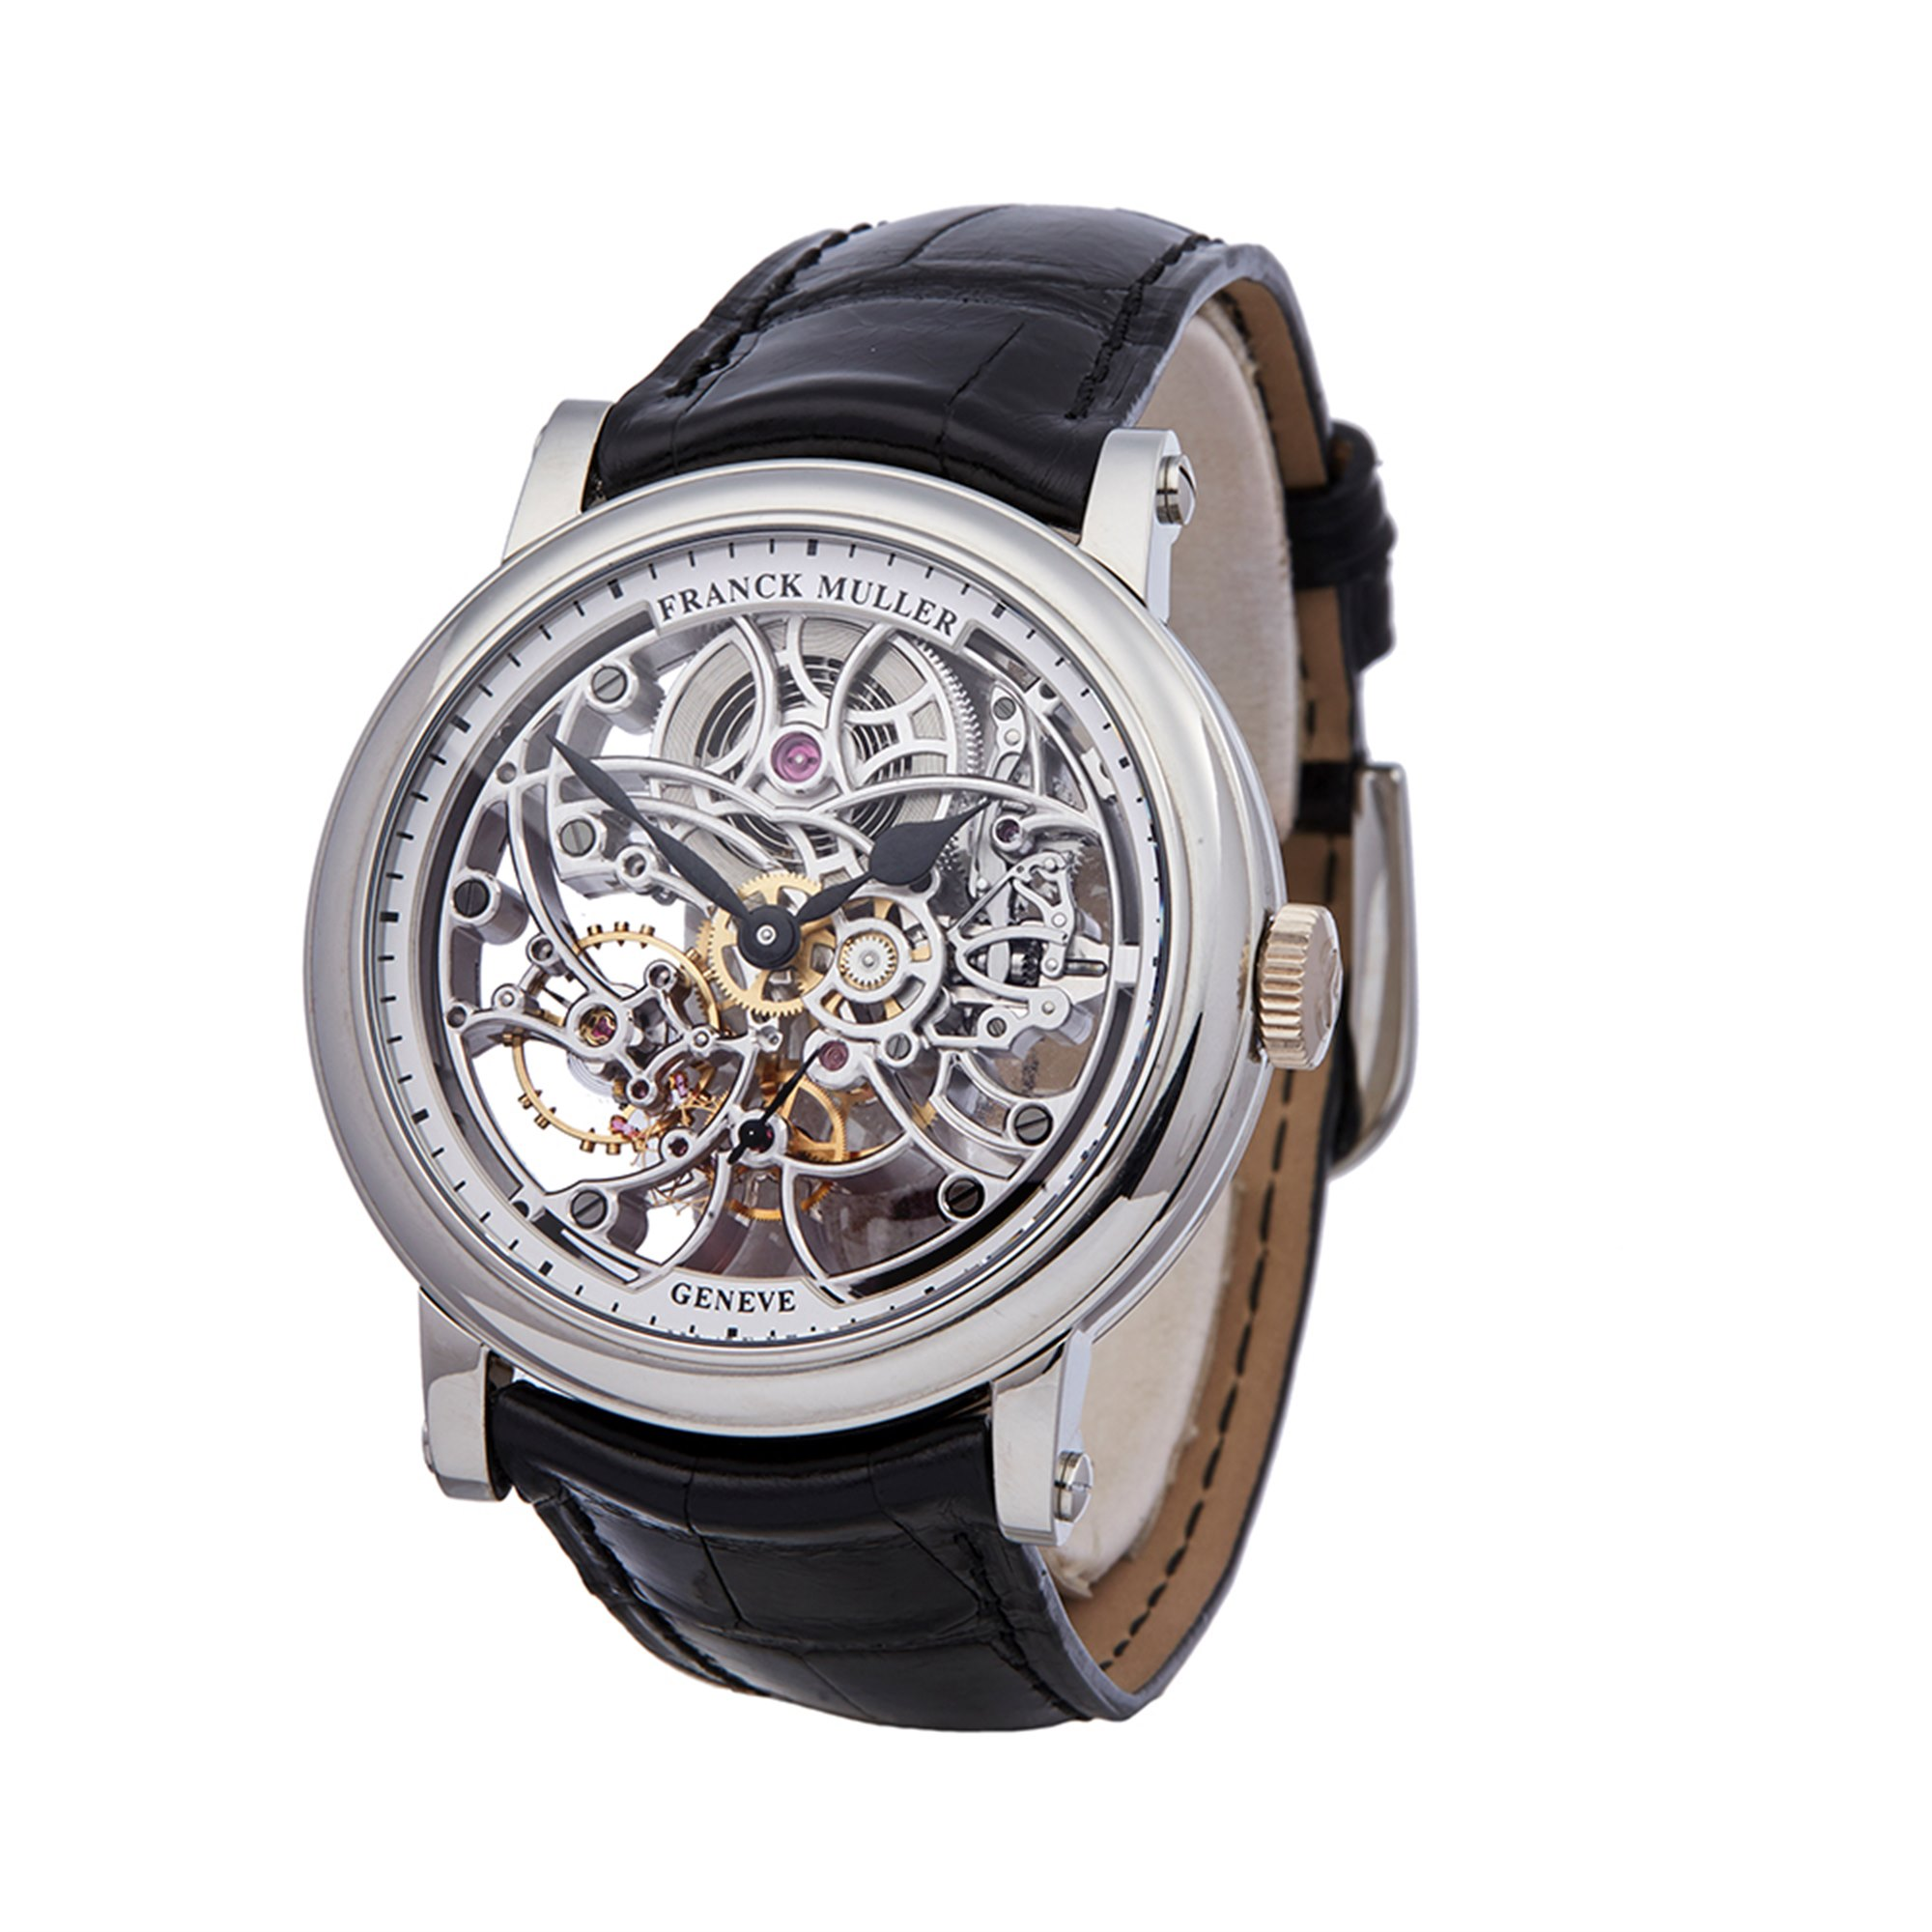 Franck Muller Round 7 Day Skeleton Stainless Steel 7042 B S65 97AC